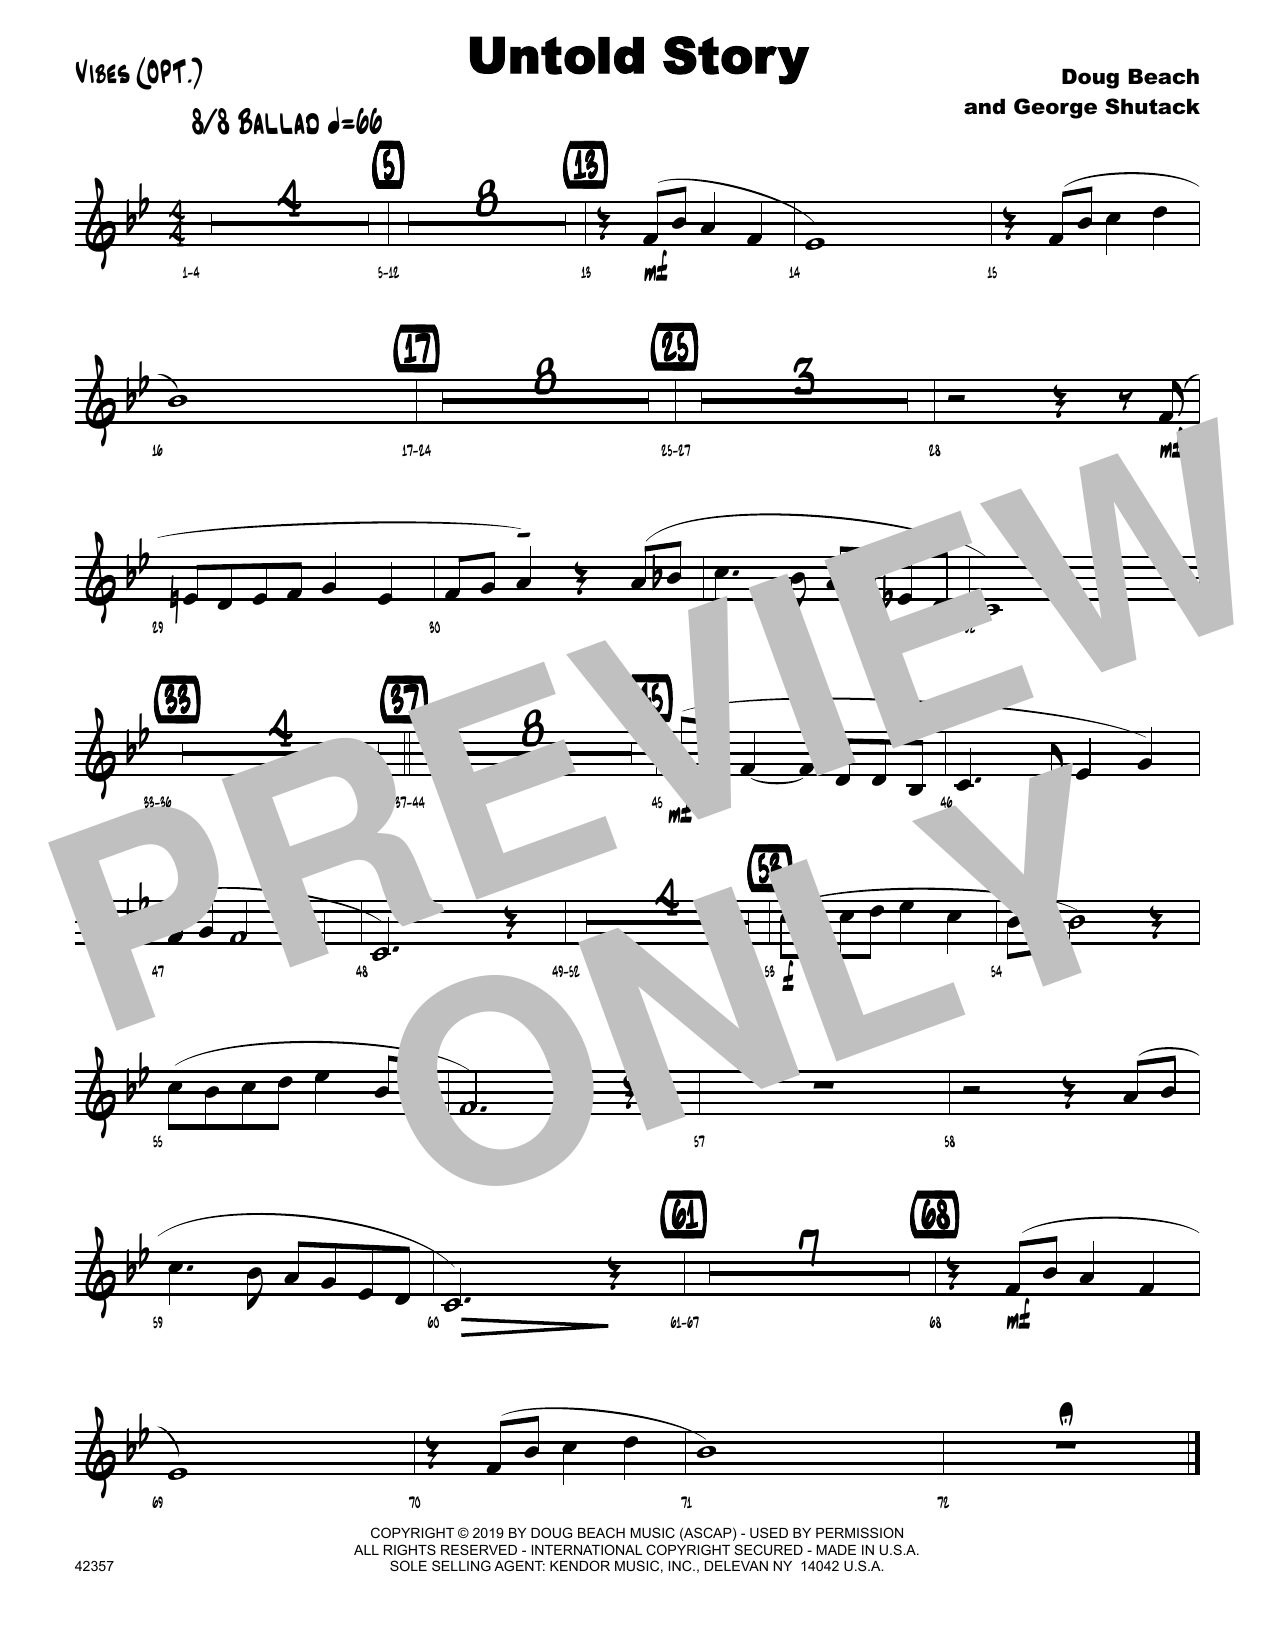 Doug Beach & George Shutack Untold Story - Vibes sheet music notes and chords. Download Printable PDF.